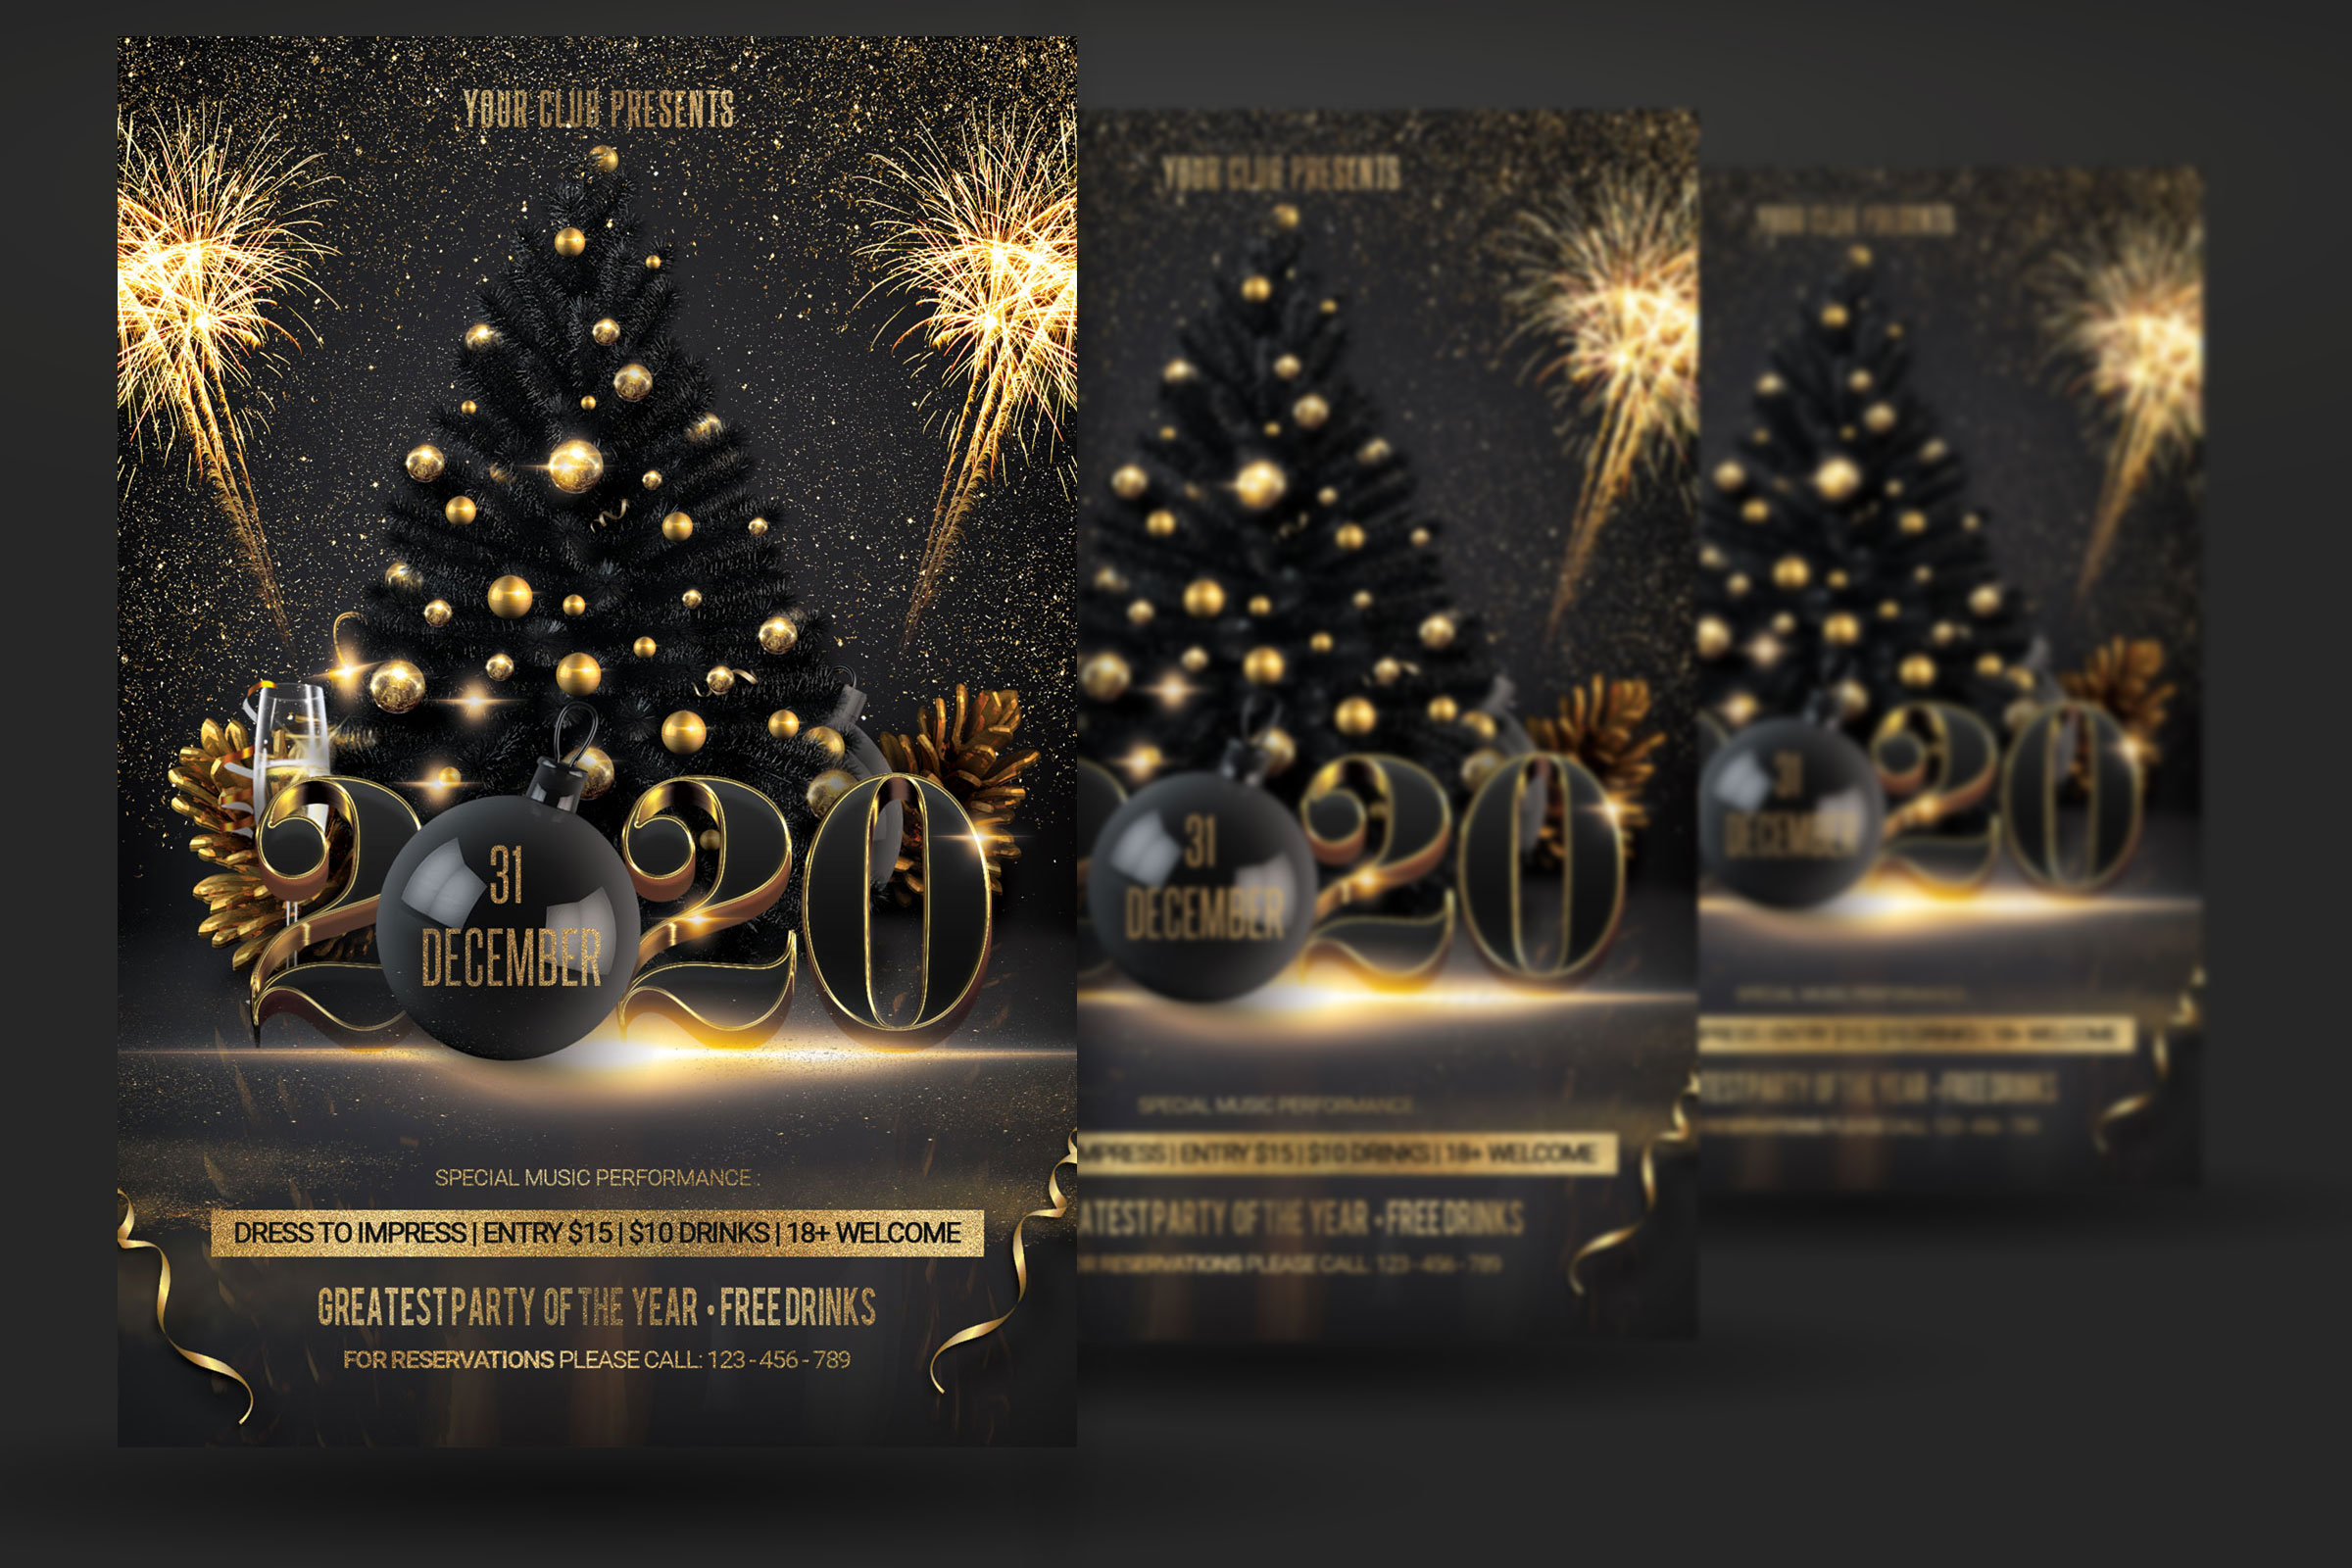 New Year Christmas Party Flyer example image 2